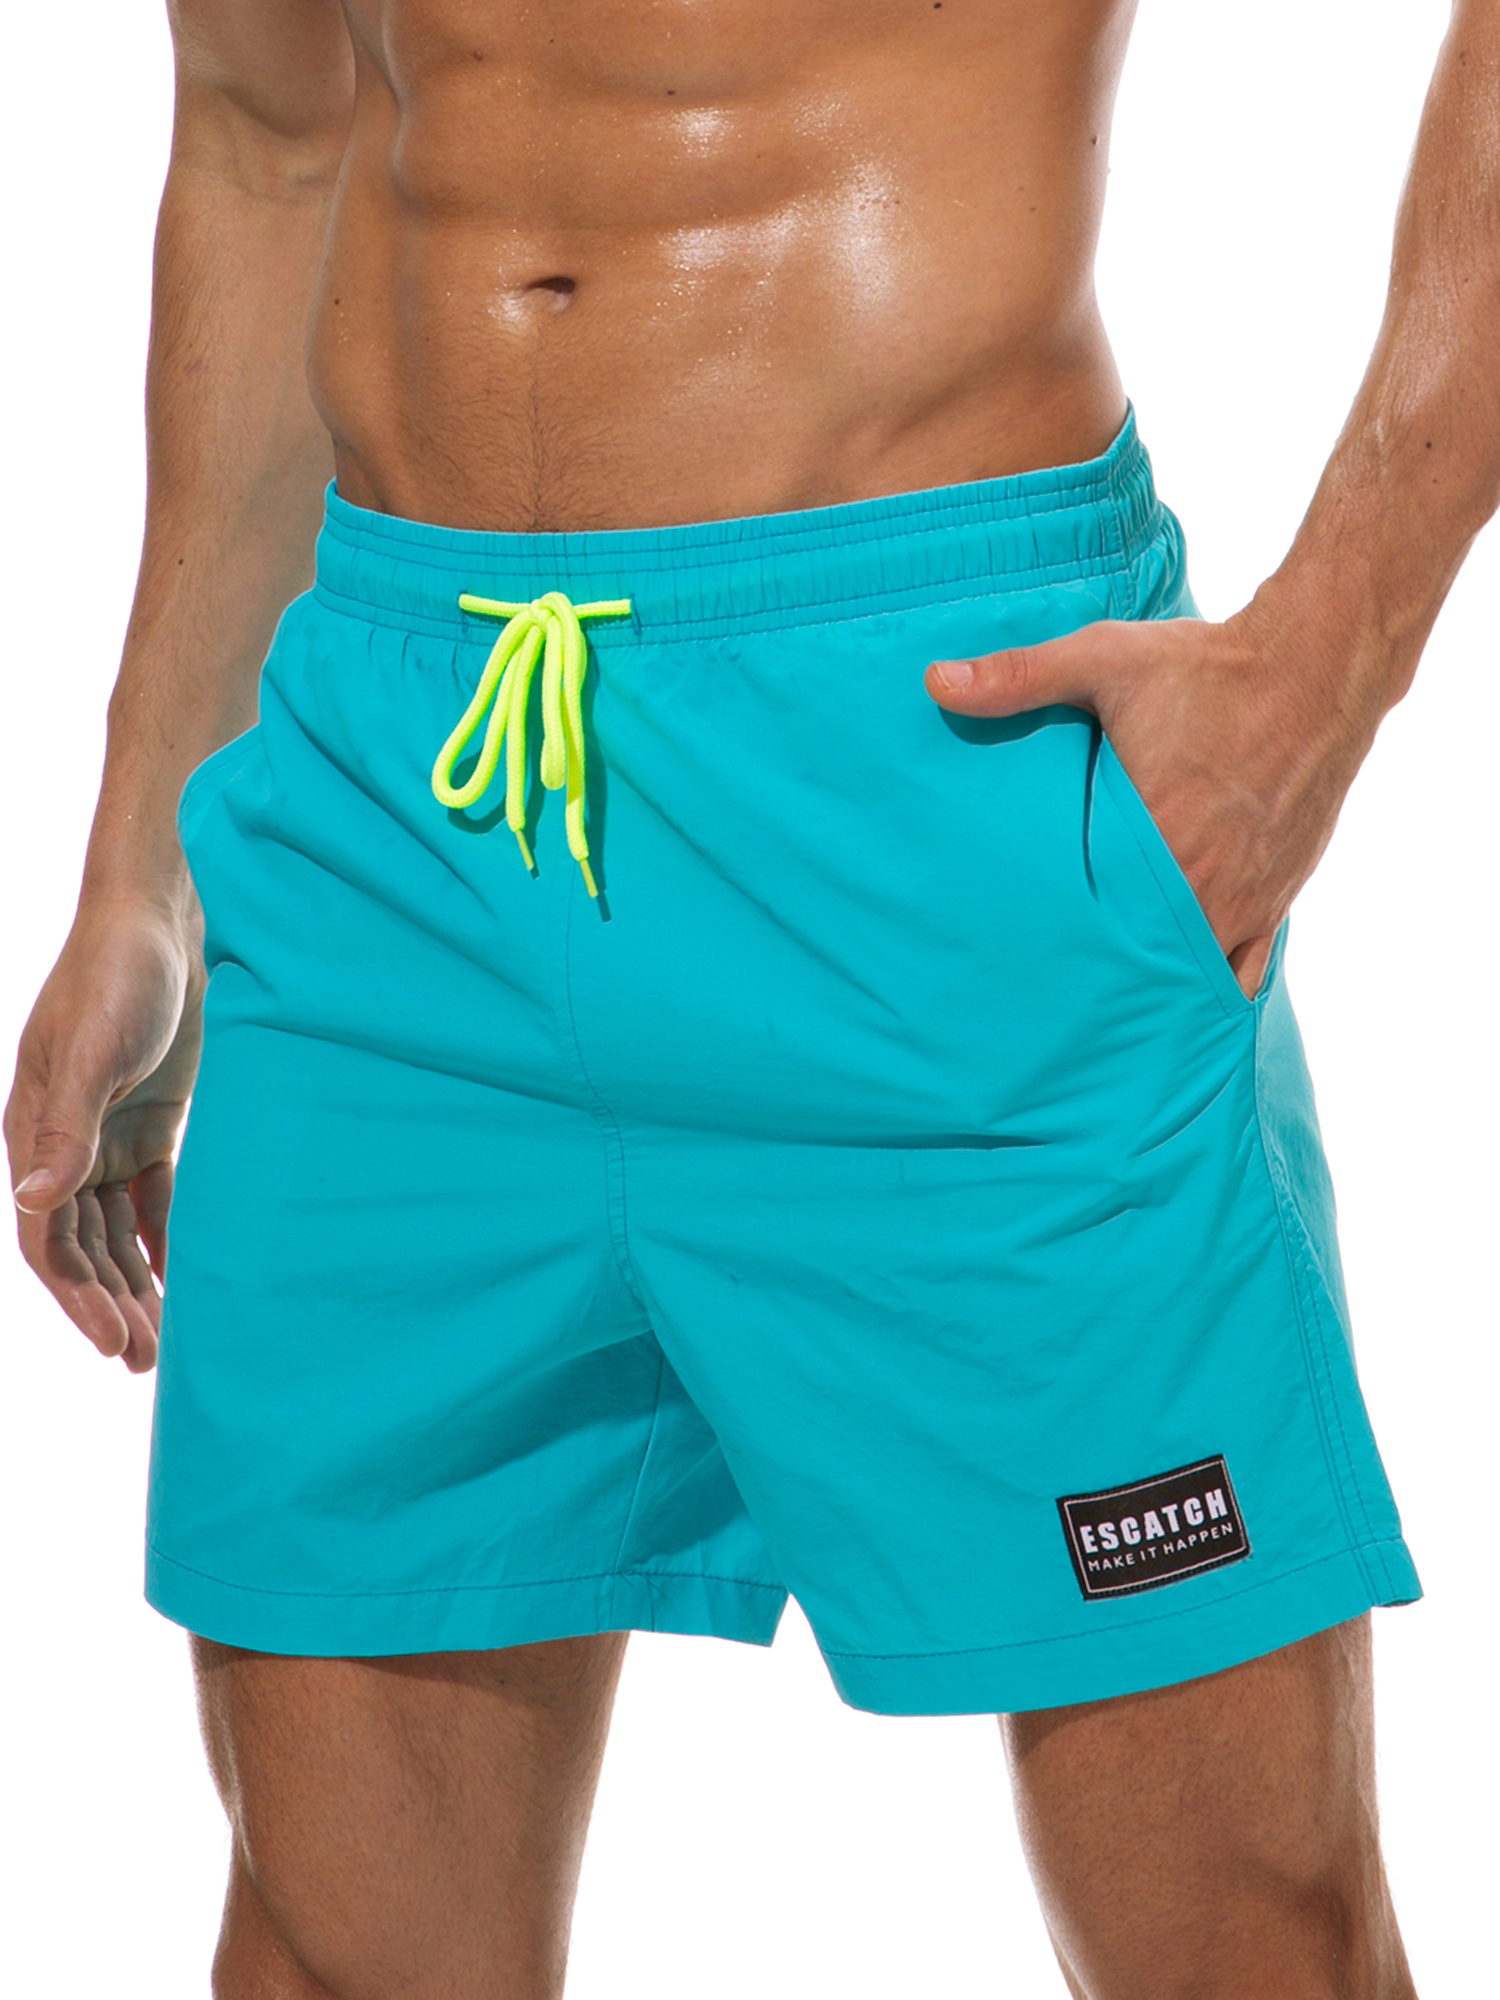 Mens Color Paint Summer Holiday Quick-Drying Swim Trunks Beach Shorts Board Shorts